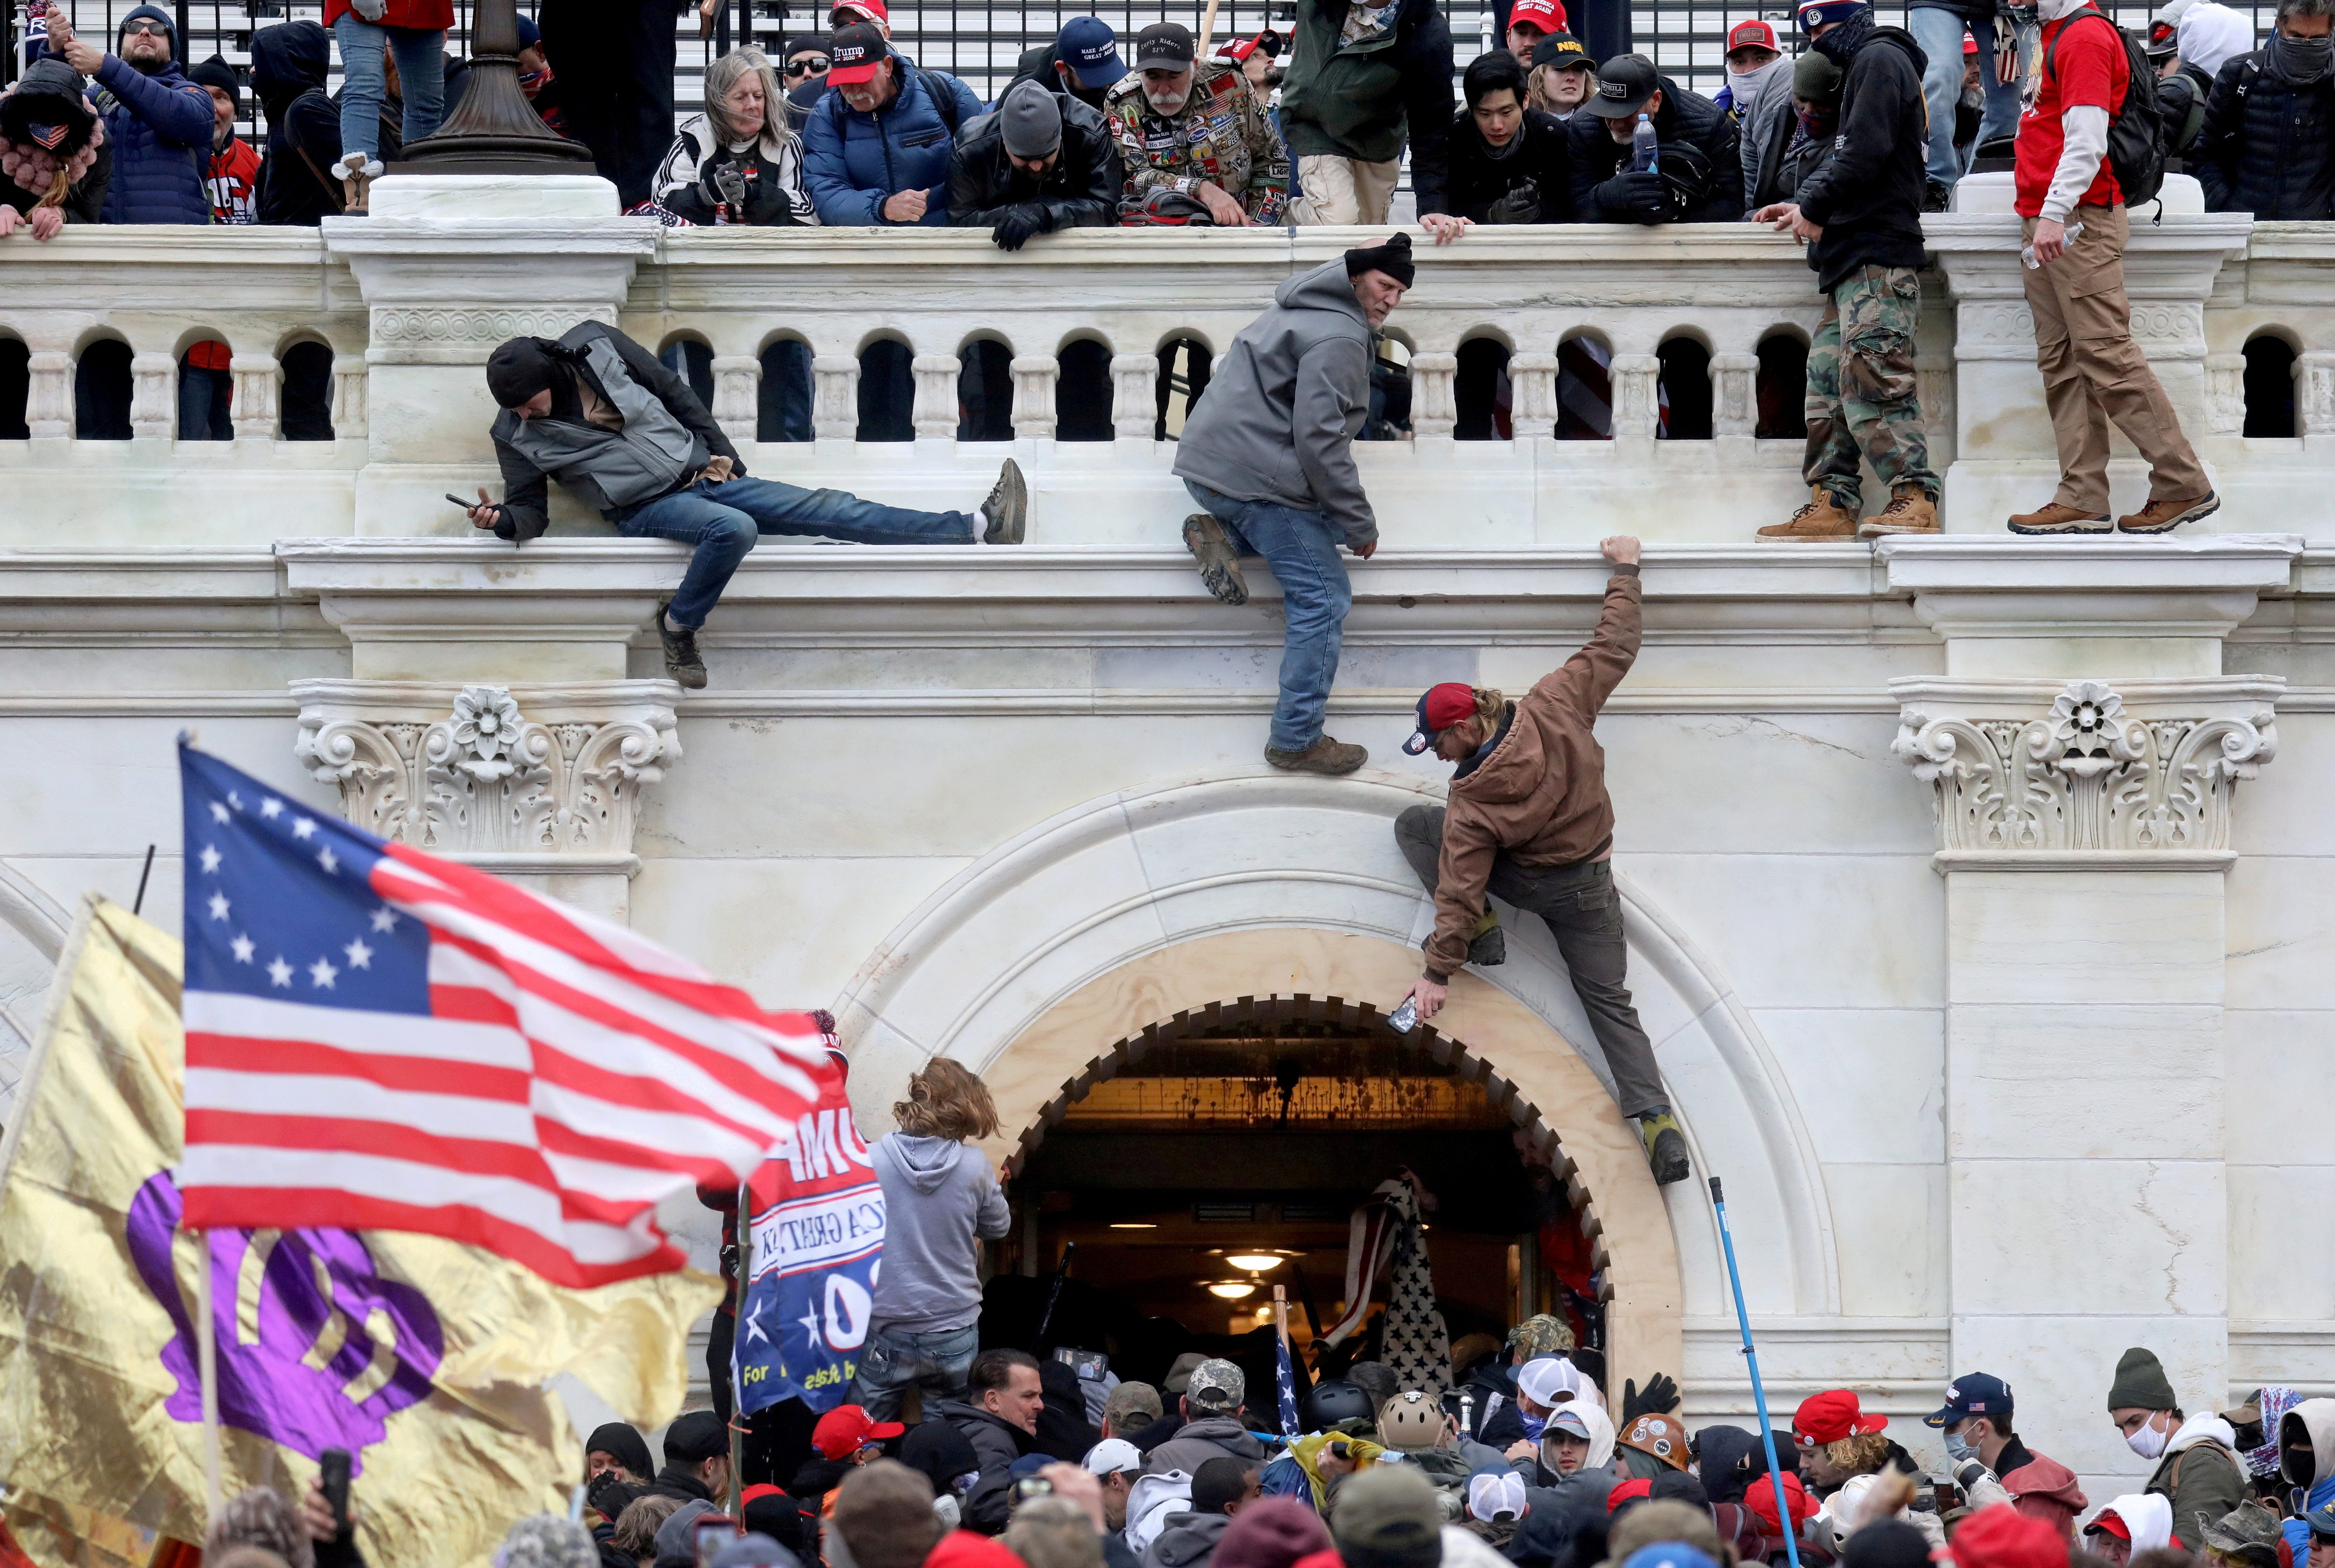 A mob of supporters of U.S. President Donald Trump fight with members of law enforcement at a door they broke open as they storm the U.S. Capitol Building in Washington, U.S., January 6, 2021. REUTERS/Leah Millis